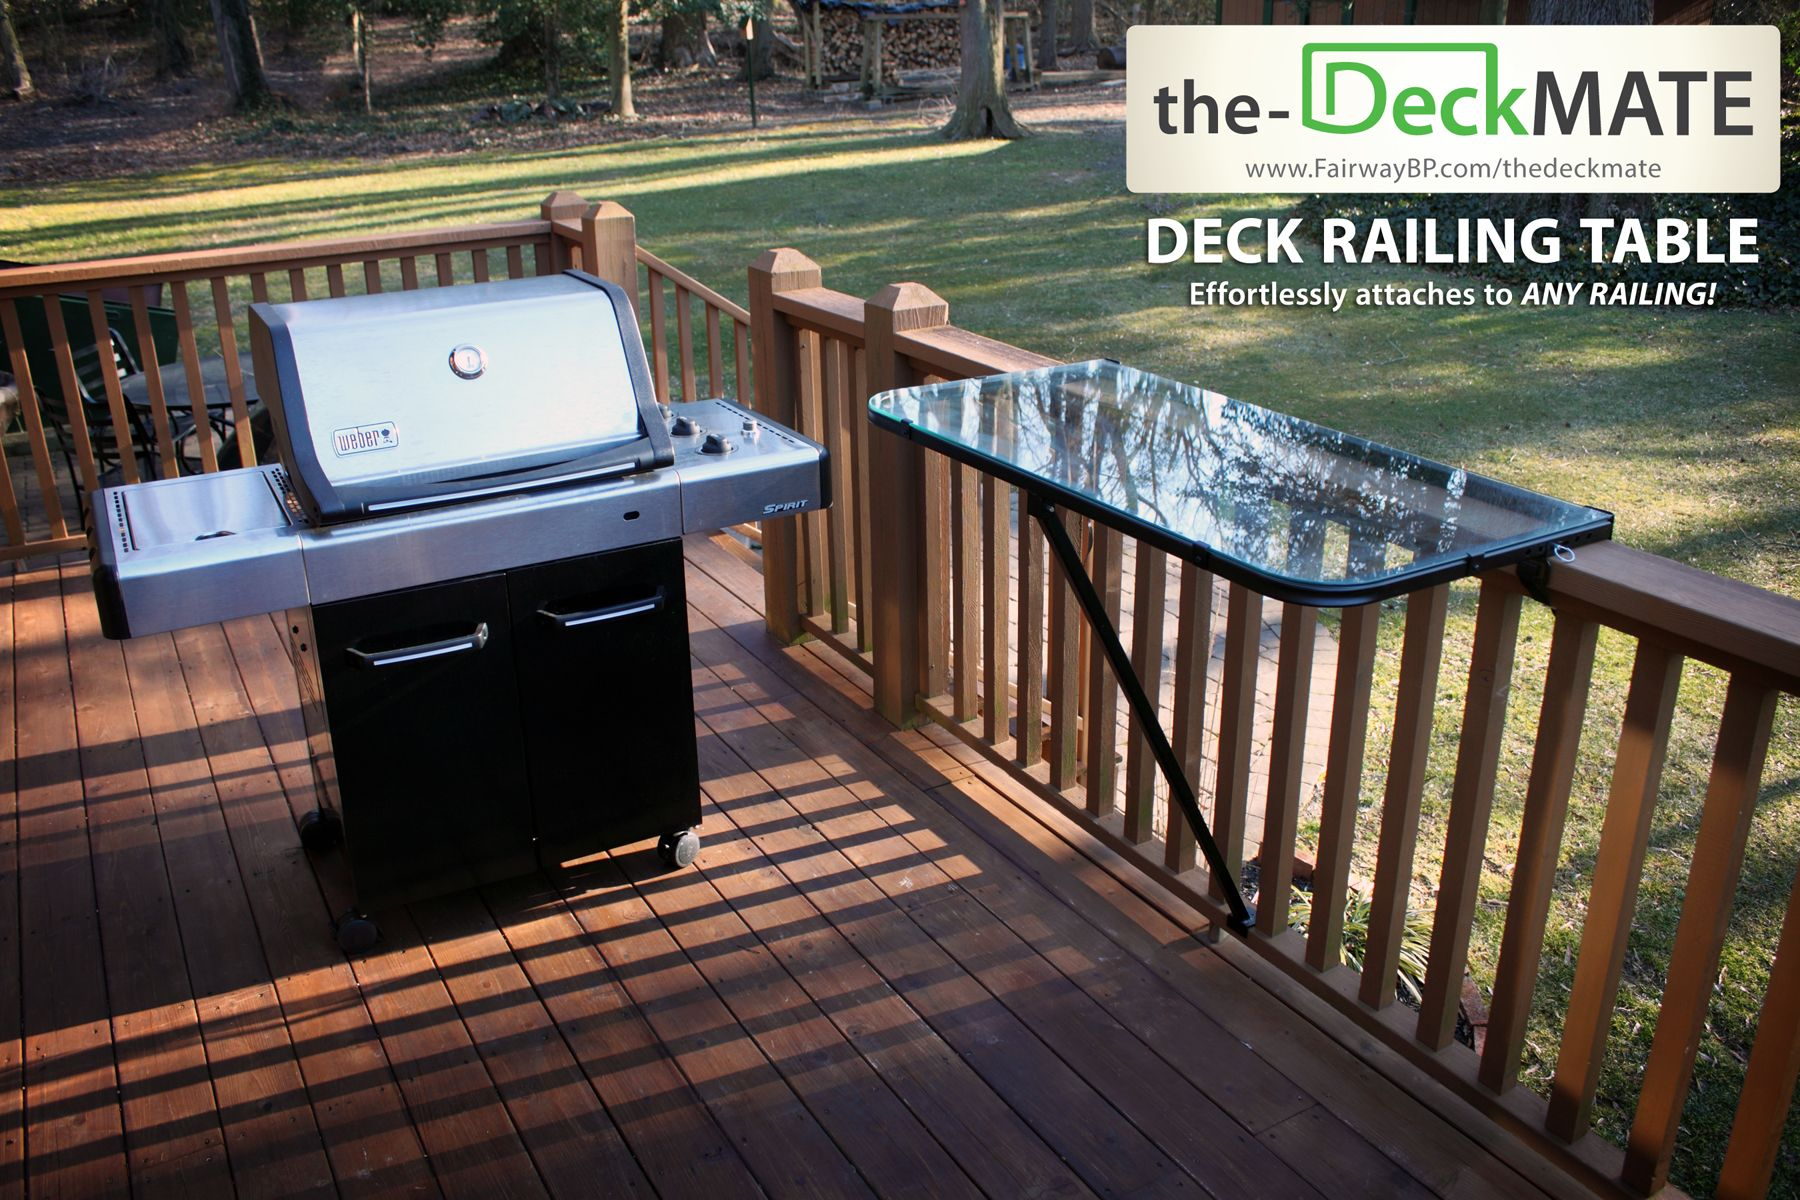 Fairway Introduces The Deckmate Deck Railing Table Easily And